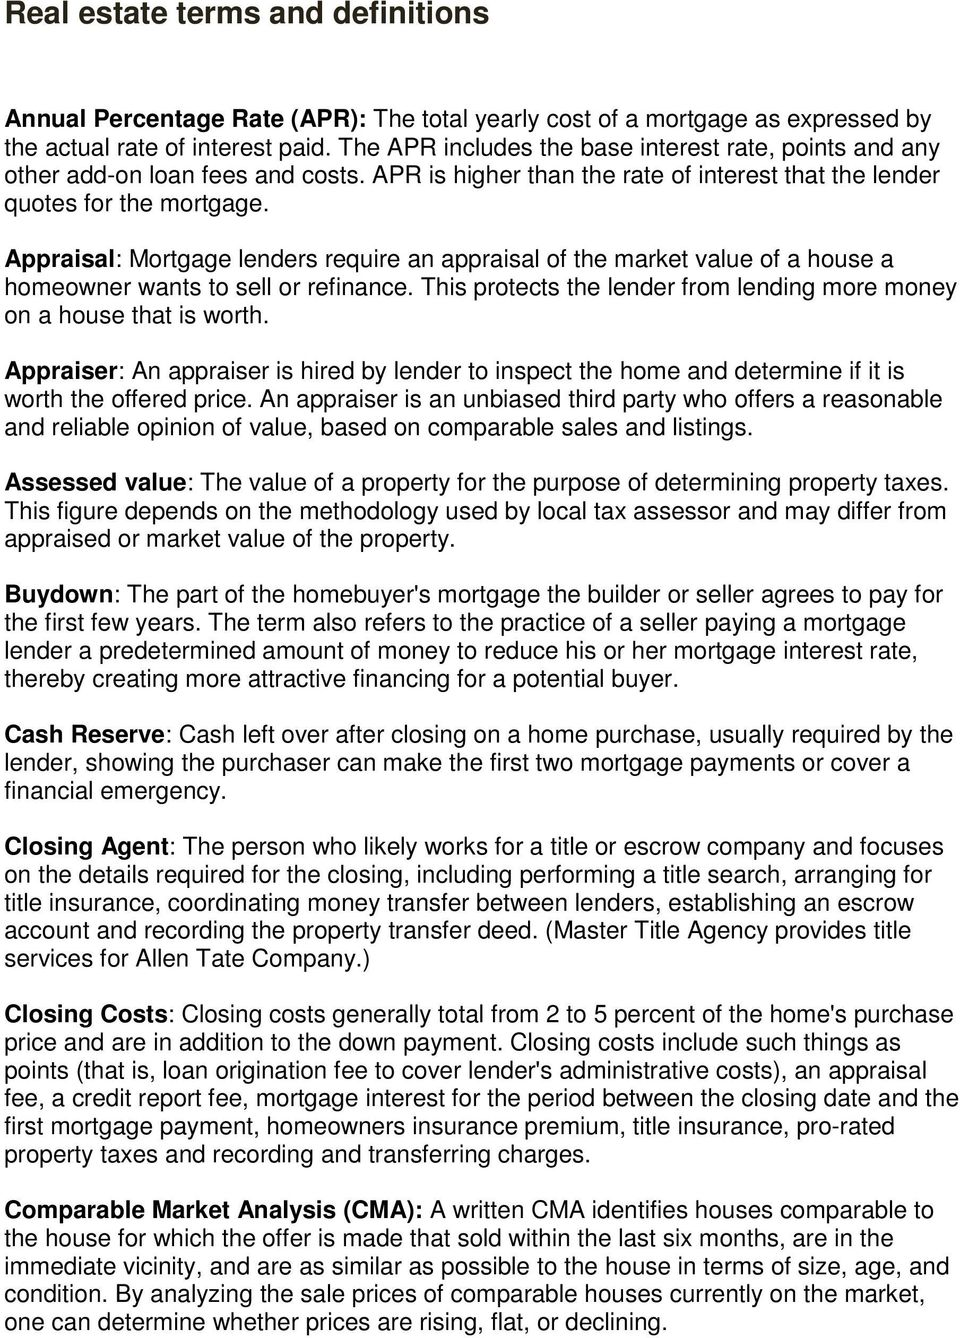 Appraisal: Mortgage lenders require an appraisal of the market value of a house a homeowner wants to sell or refinance. This protects the lender from lending more money on a house that is worth.